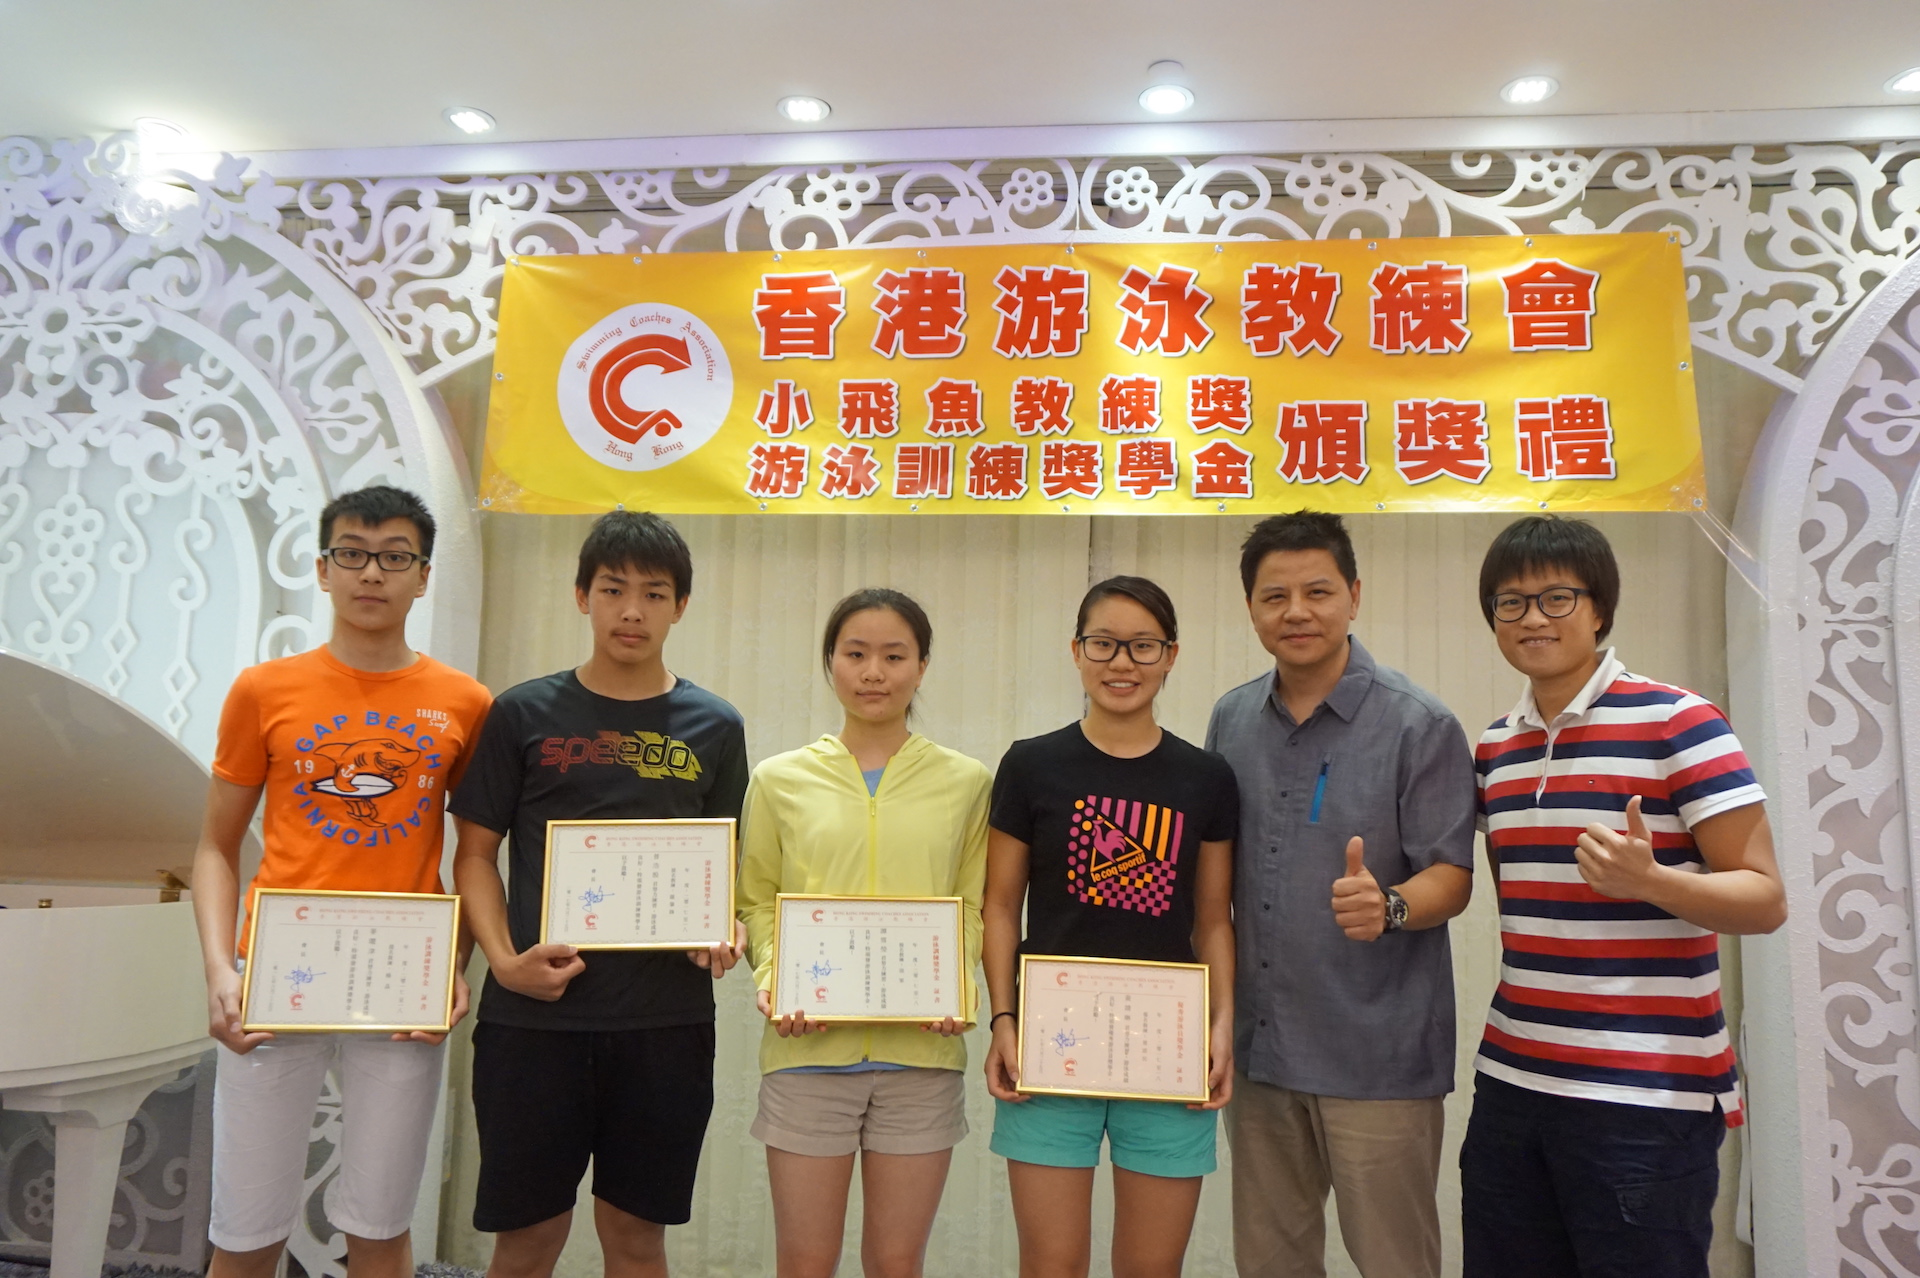 Win Tin Swimming Club - 2017 HKSCA Award Presentation